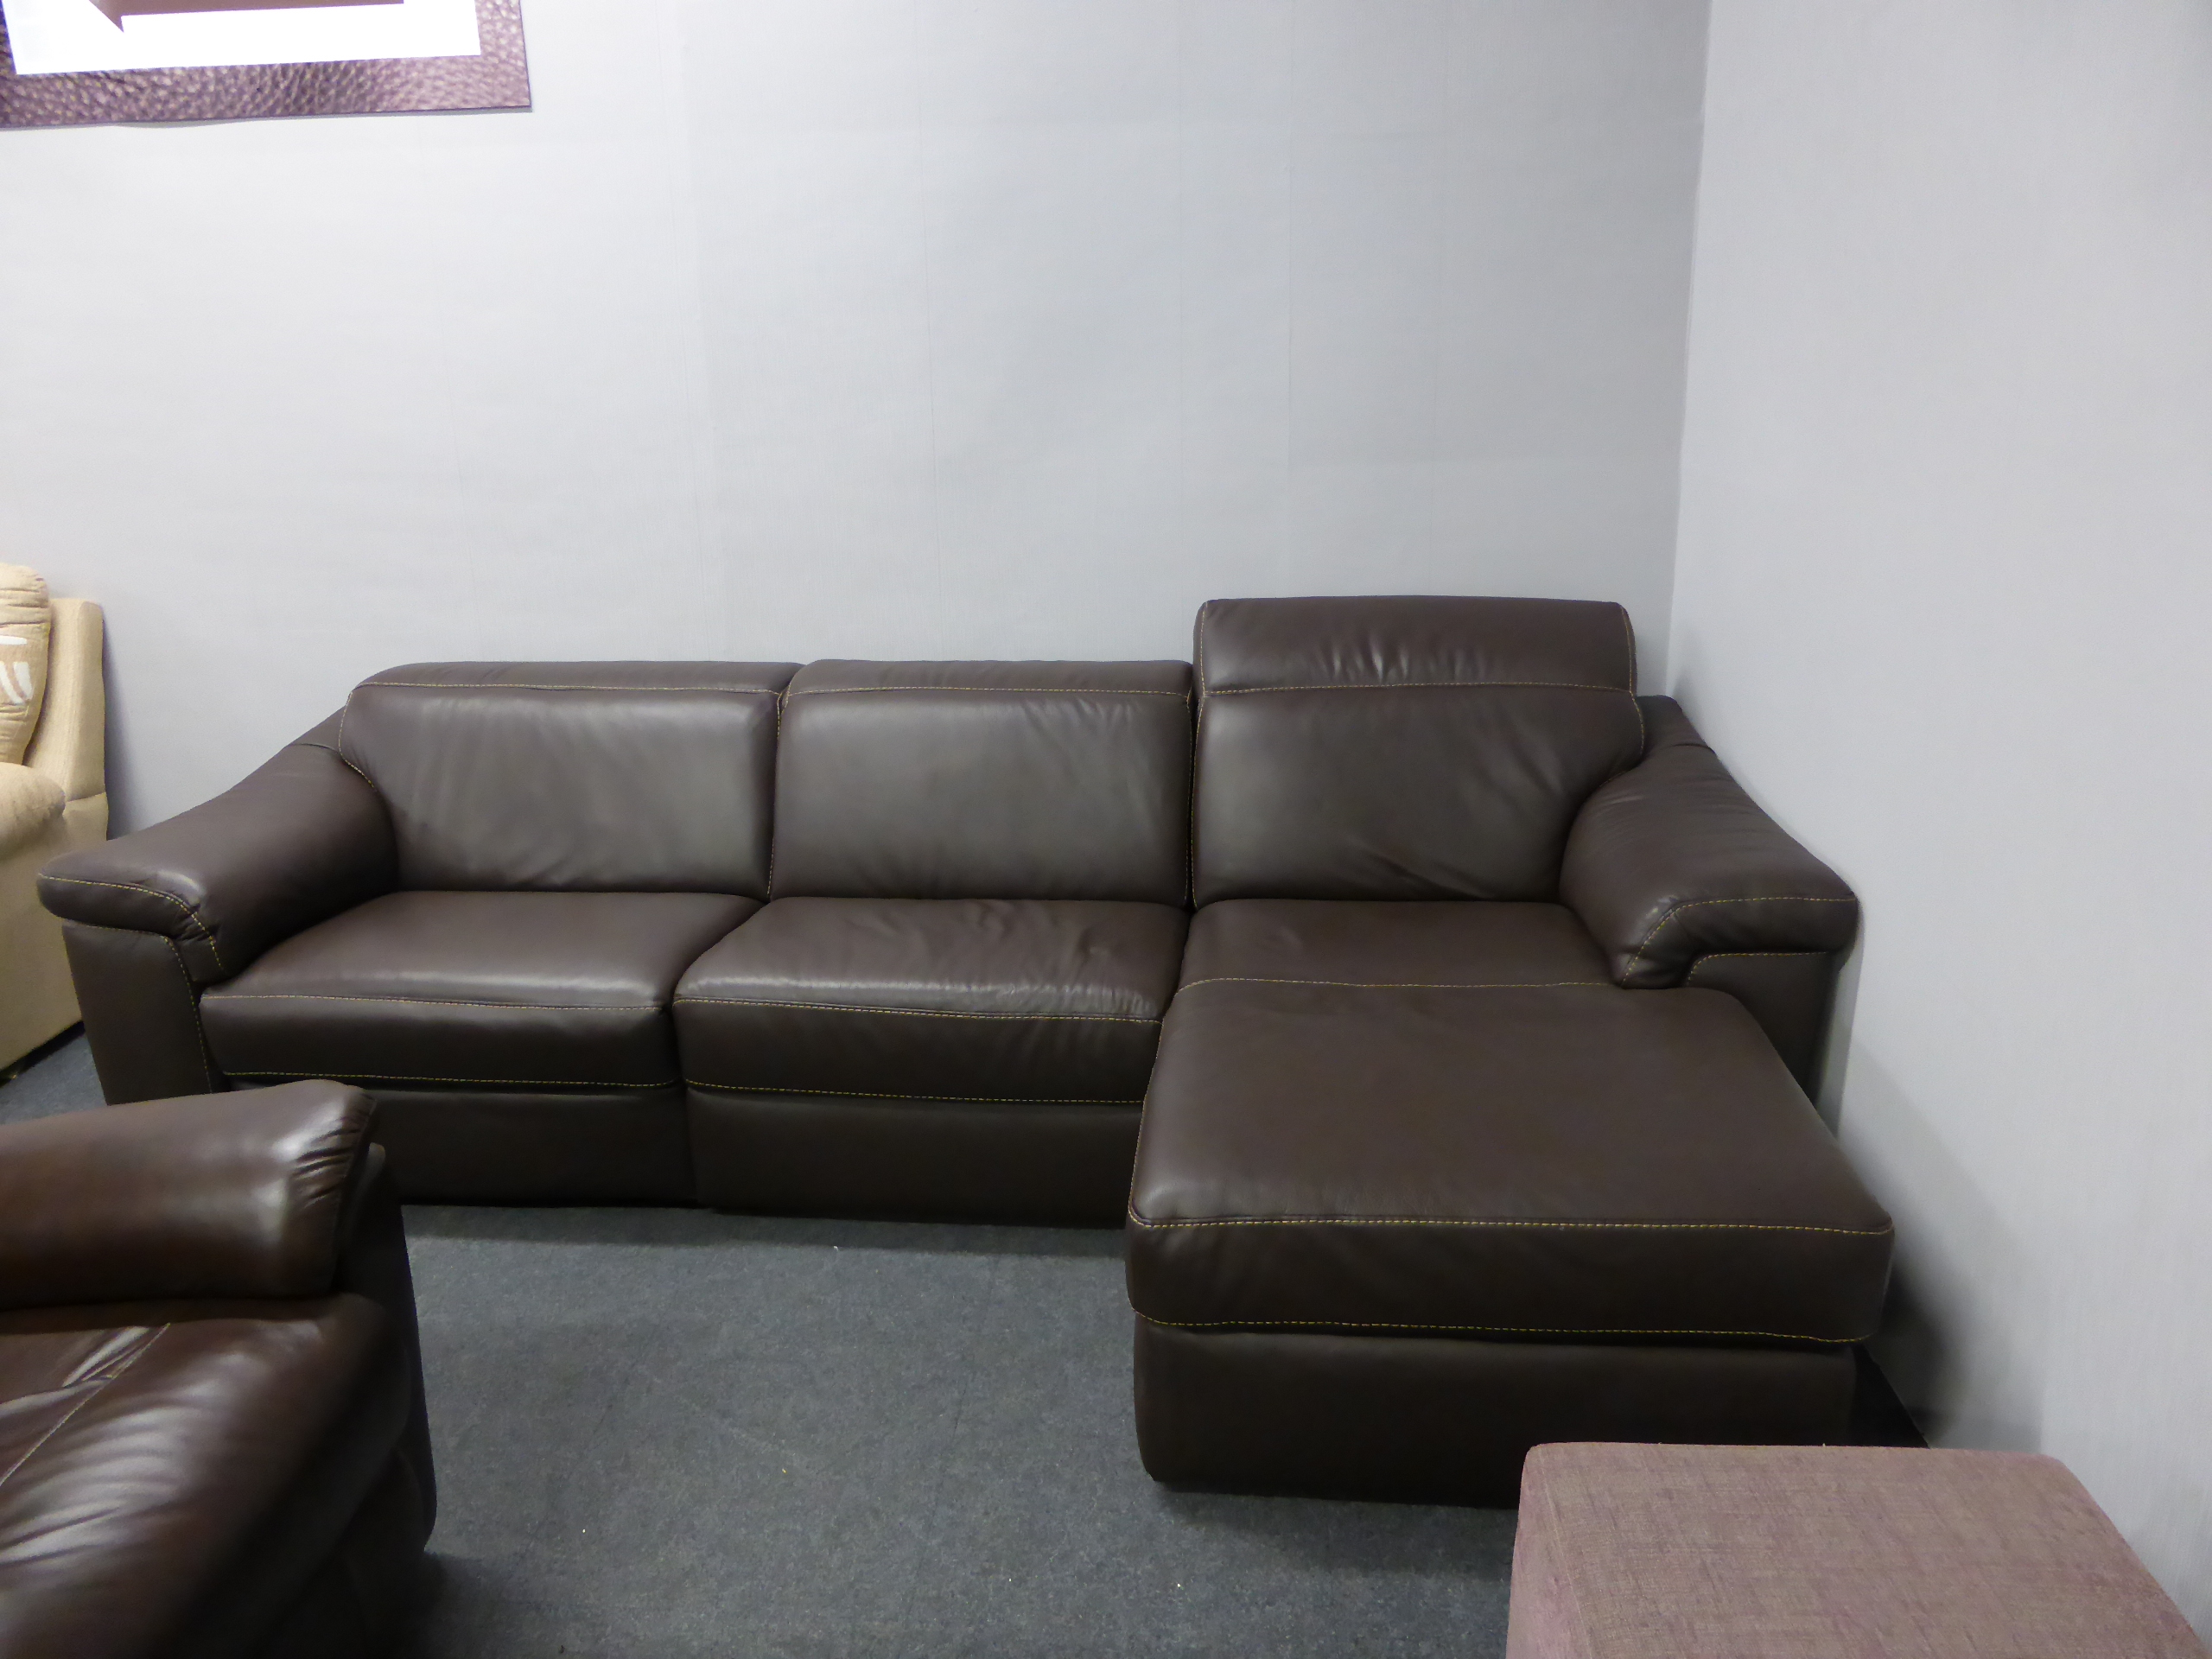 natuzzi electric recliner sofa small double leather bed edition sylvia b760 reclining chaise